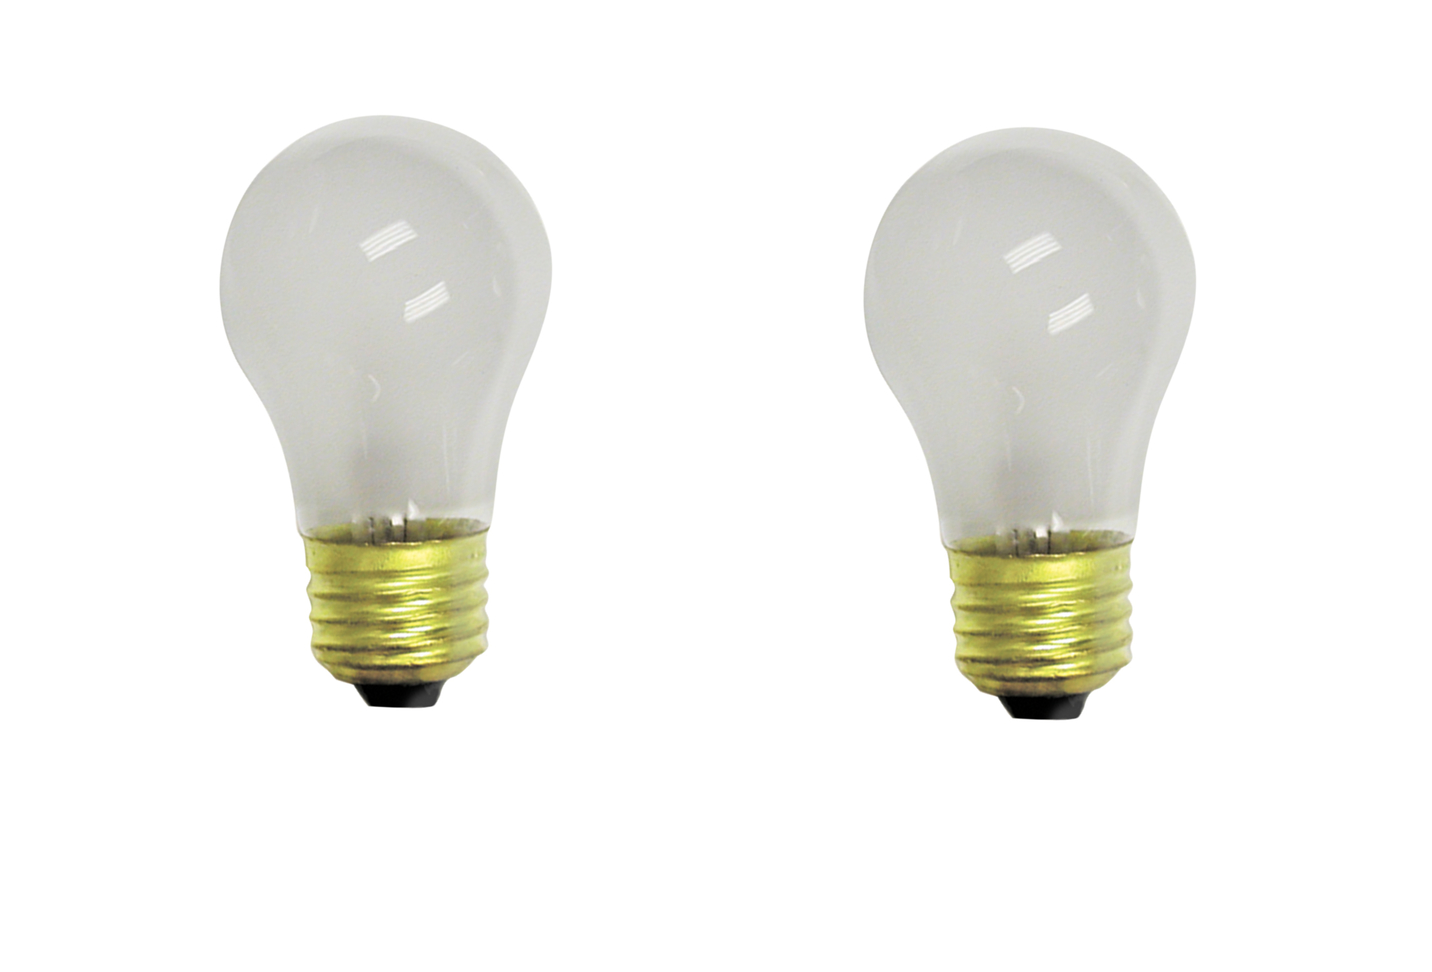 2 pack Camco Incadescent Screw Base OVEN Bulbs BULB A-15 15W OVEN